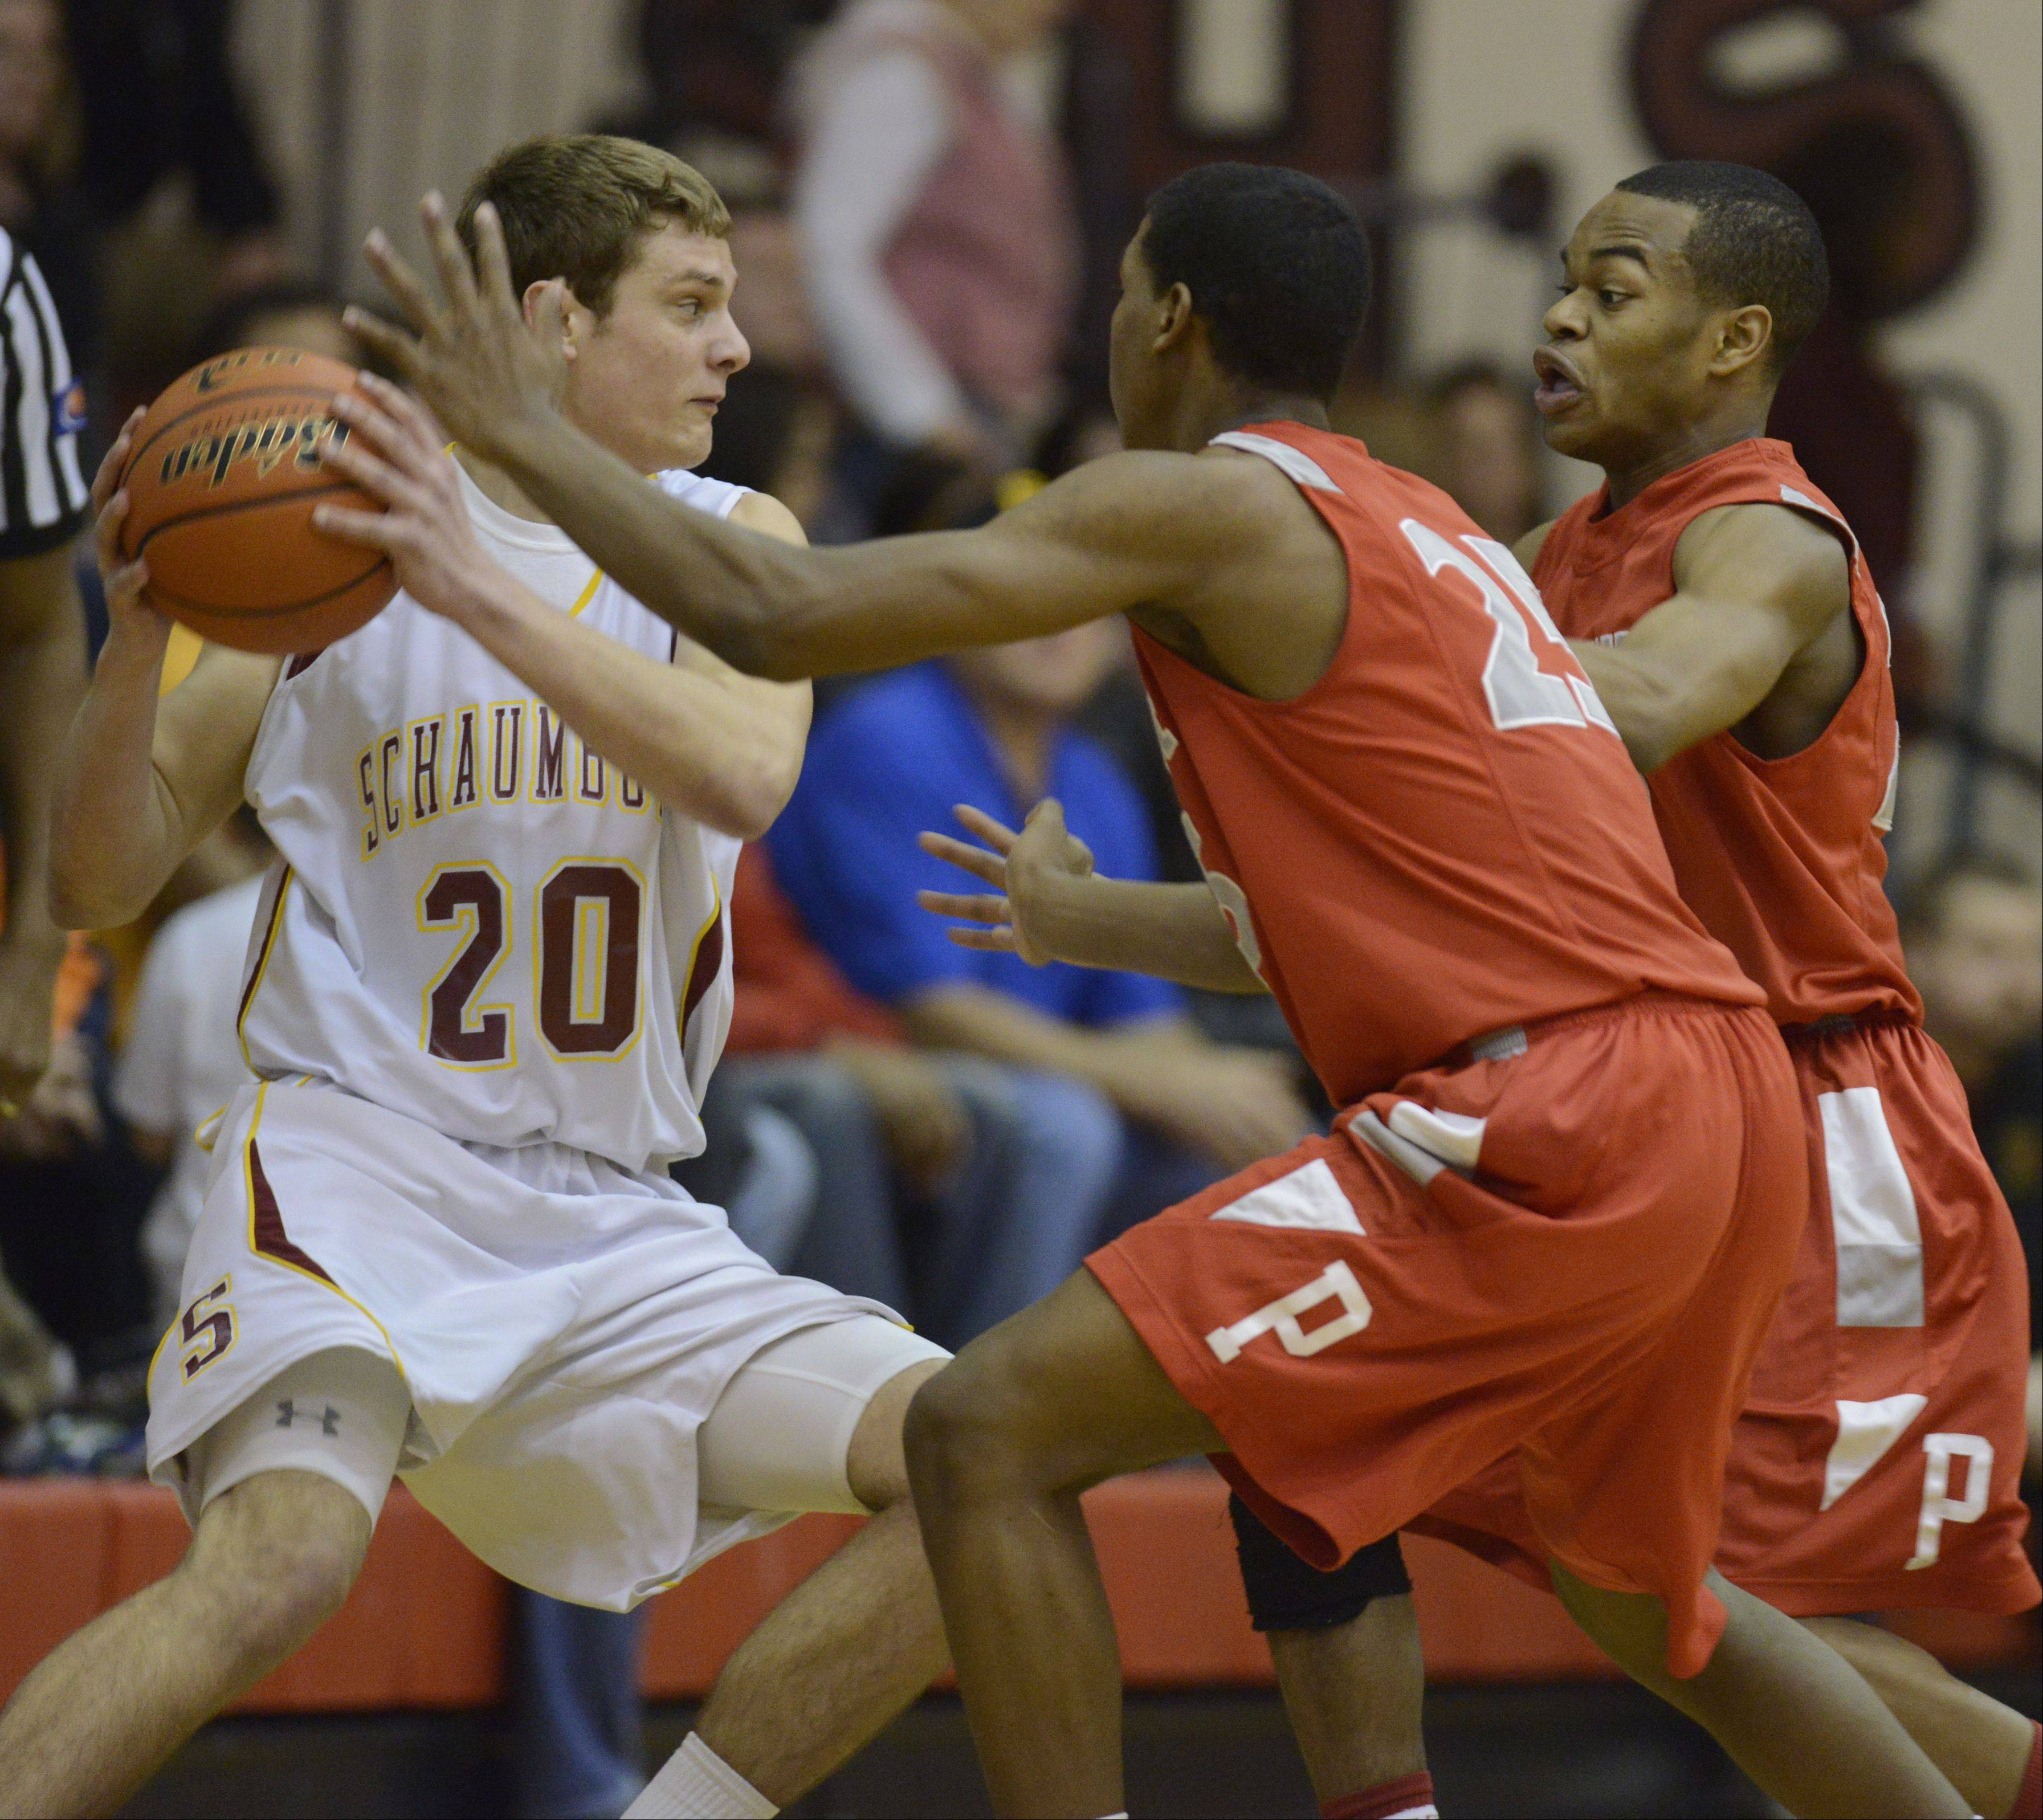 Images: Schaumburg vs. Palatine, boys MSL West championship basketball